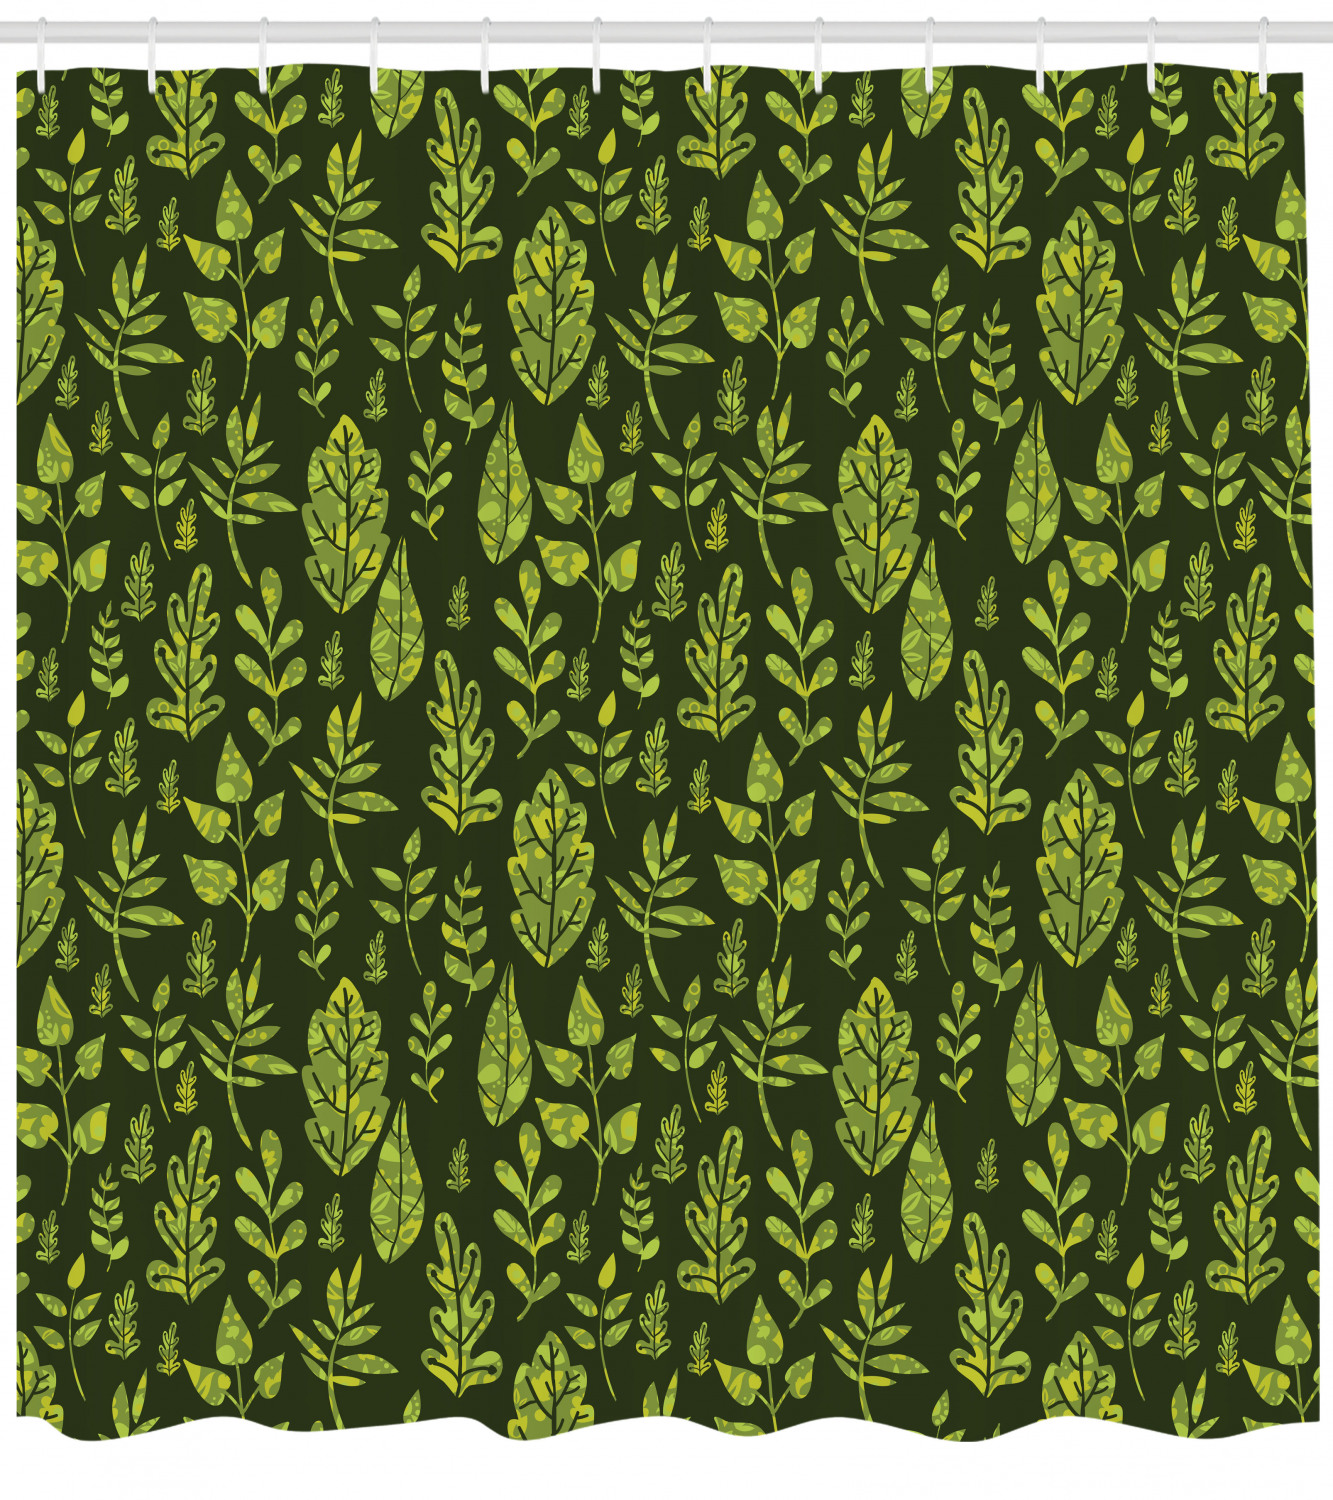 Sage Shower Curtain Patterned Green Leaves Nature Inspired Composition Fresh Trees Woodland Fabric Bathroom Set With Hooks 69w X 70l Inches Apple